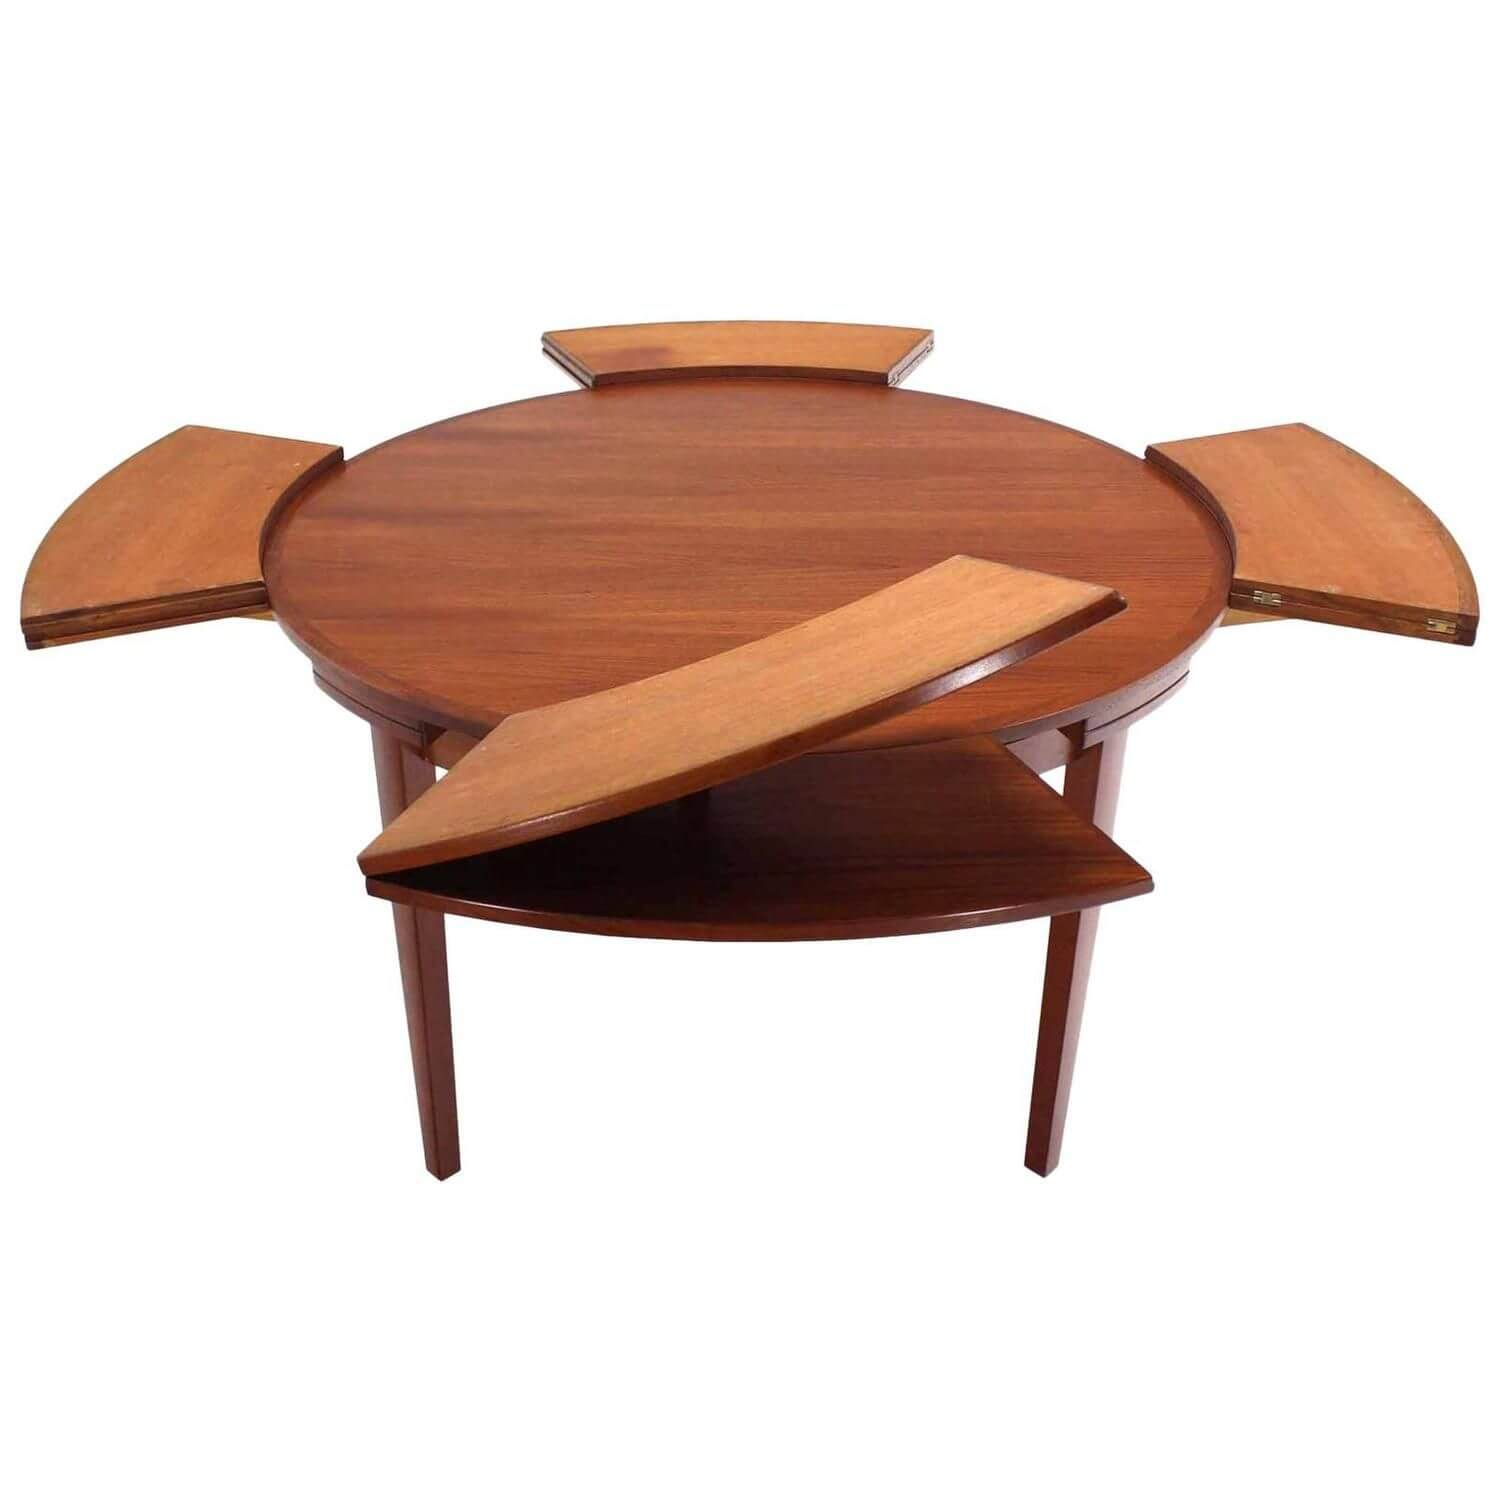 FOLD AND DROP WOOD EXPANDABLE ROUND DINING TABLE